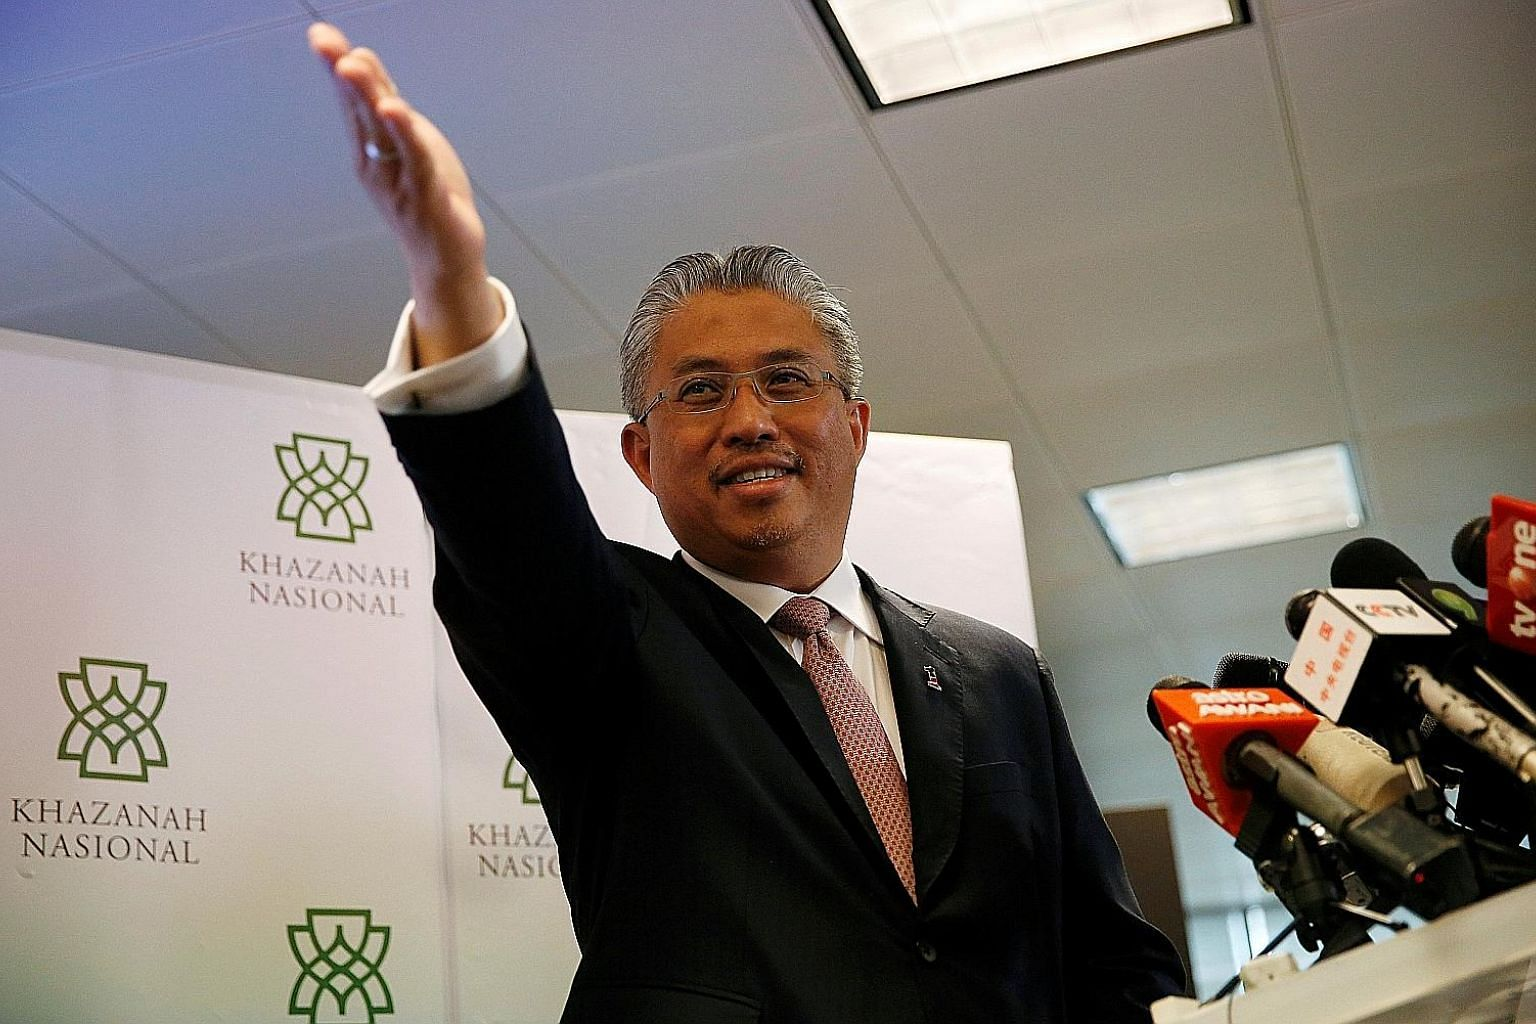 Khazanah Nasional's managing director, Tan Sri Dato' Azman Mokhtar, and the state fund's entire board offered to resign on Tuesday in the biggest management shake-up at Malaysia's state-linked firms since the new government took office.